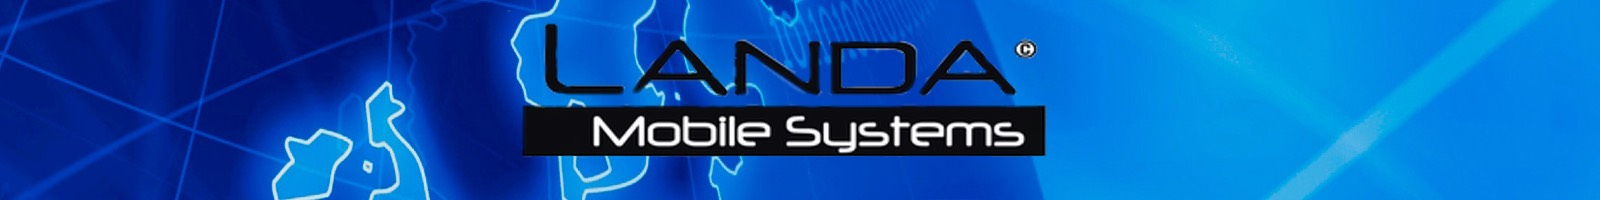 Landa Mobile Systems LLC pagelmslogobanner SERVICE CENTER